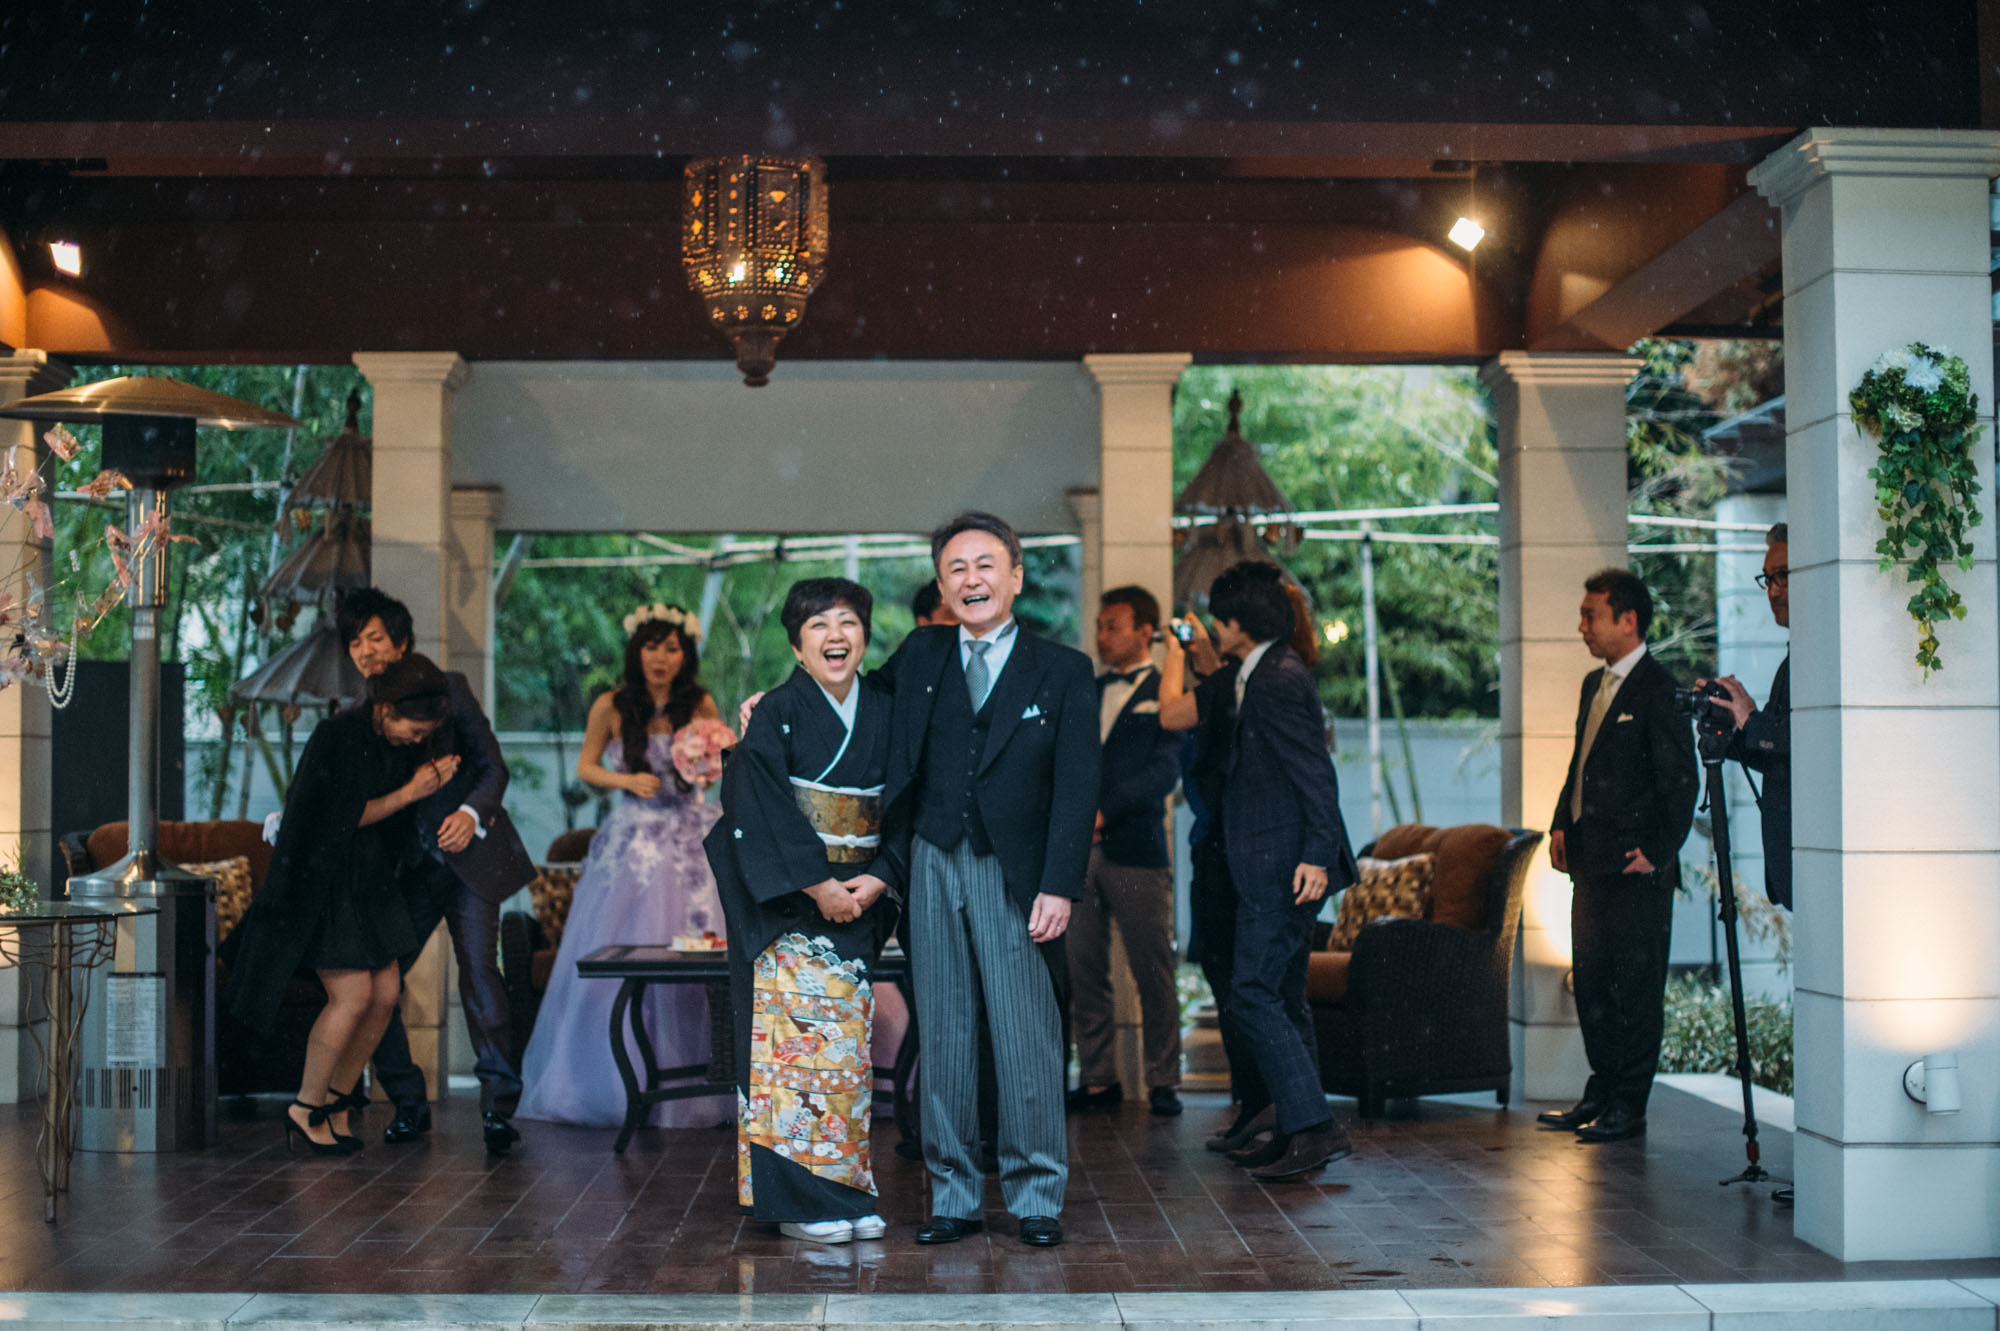 nagoya wedding137